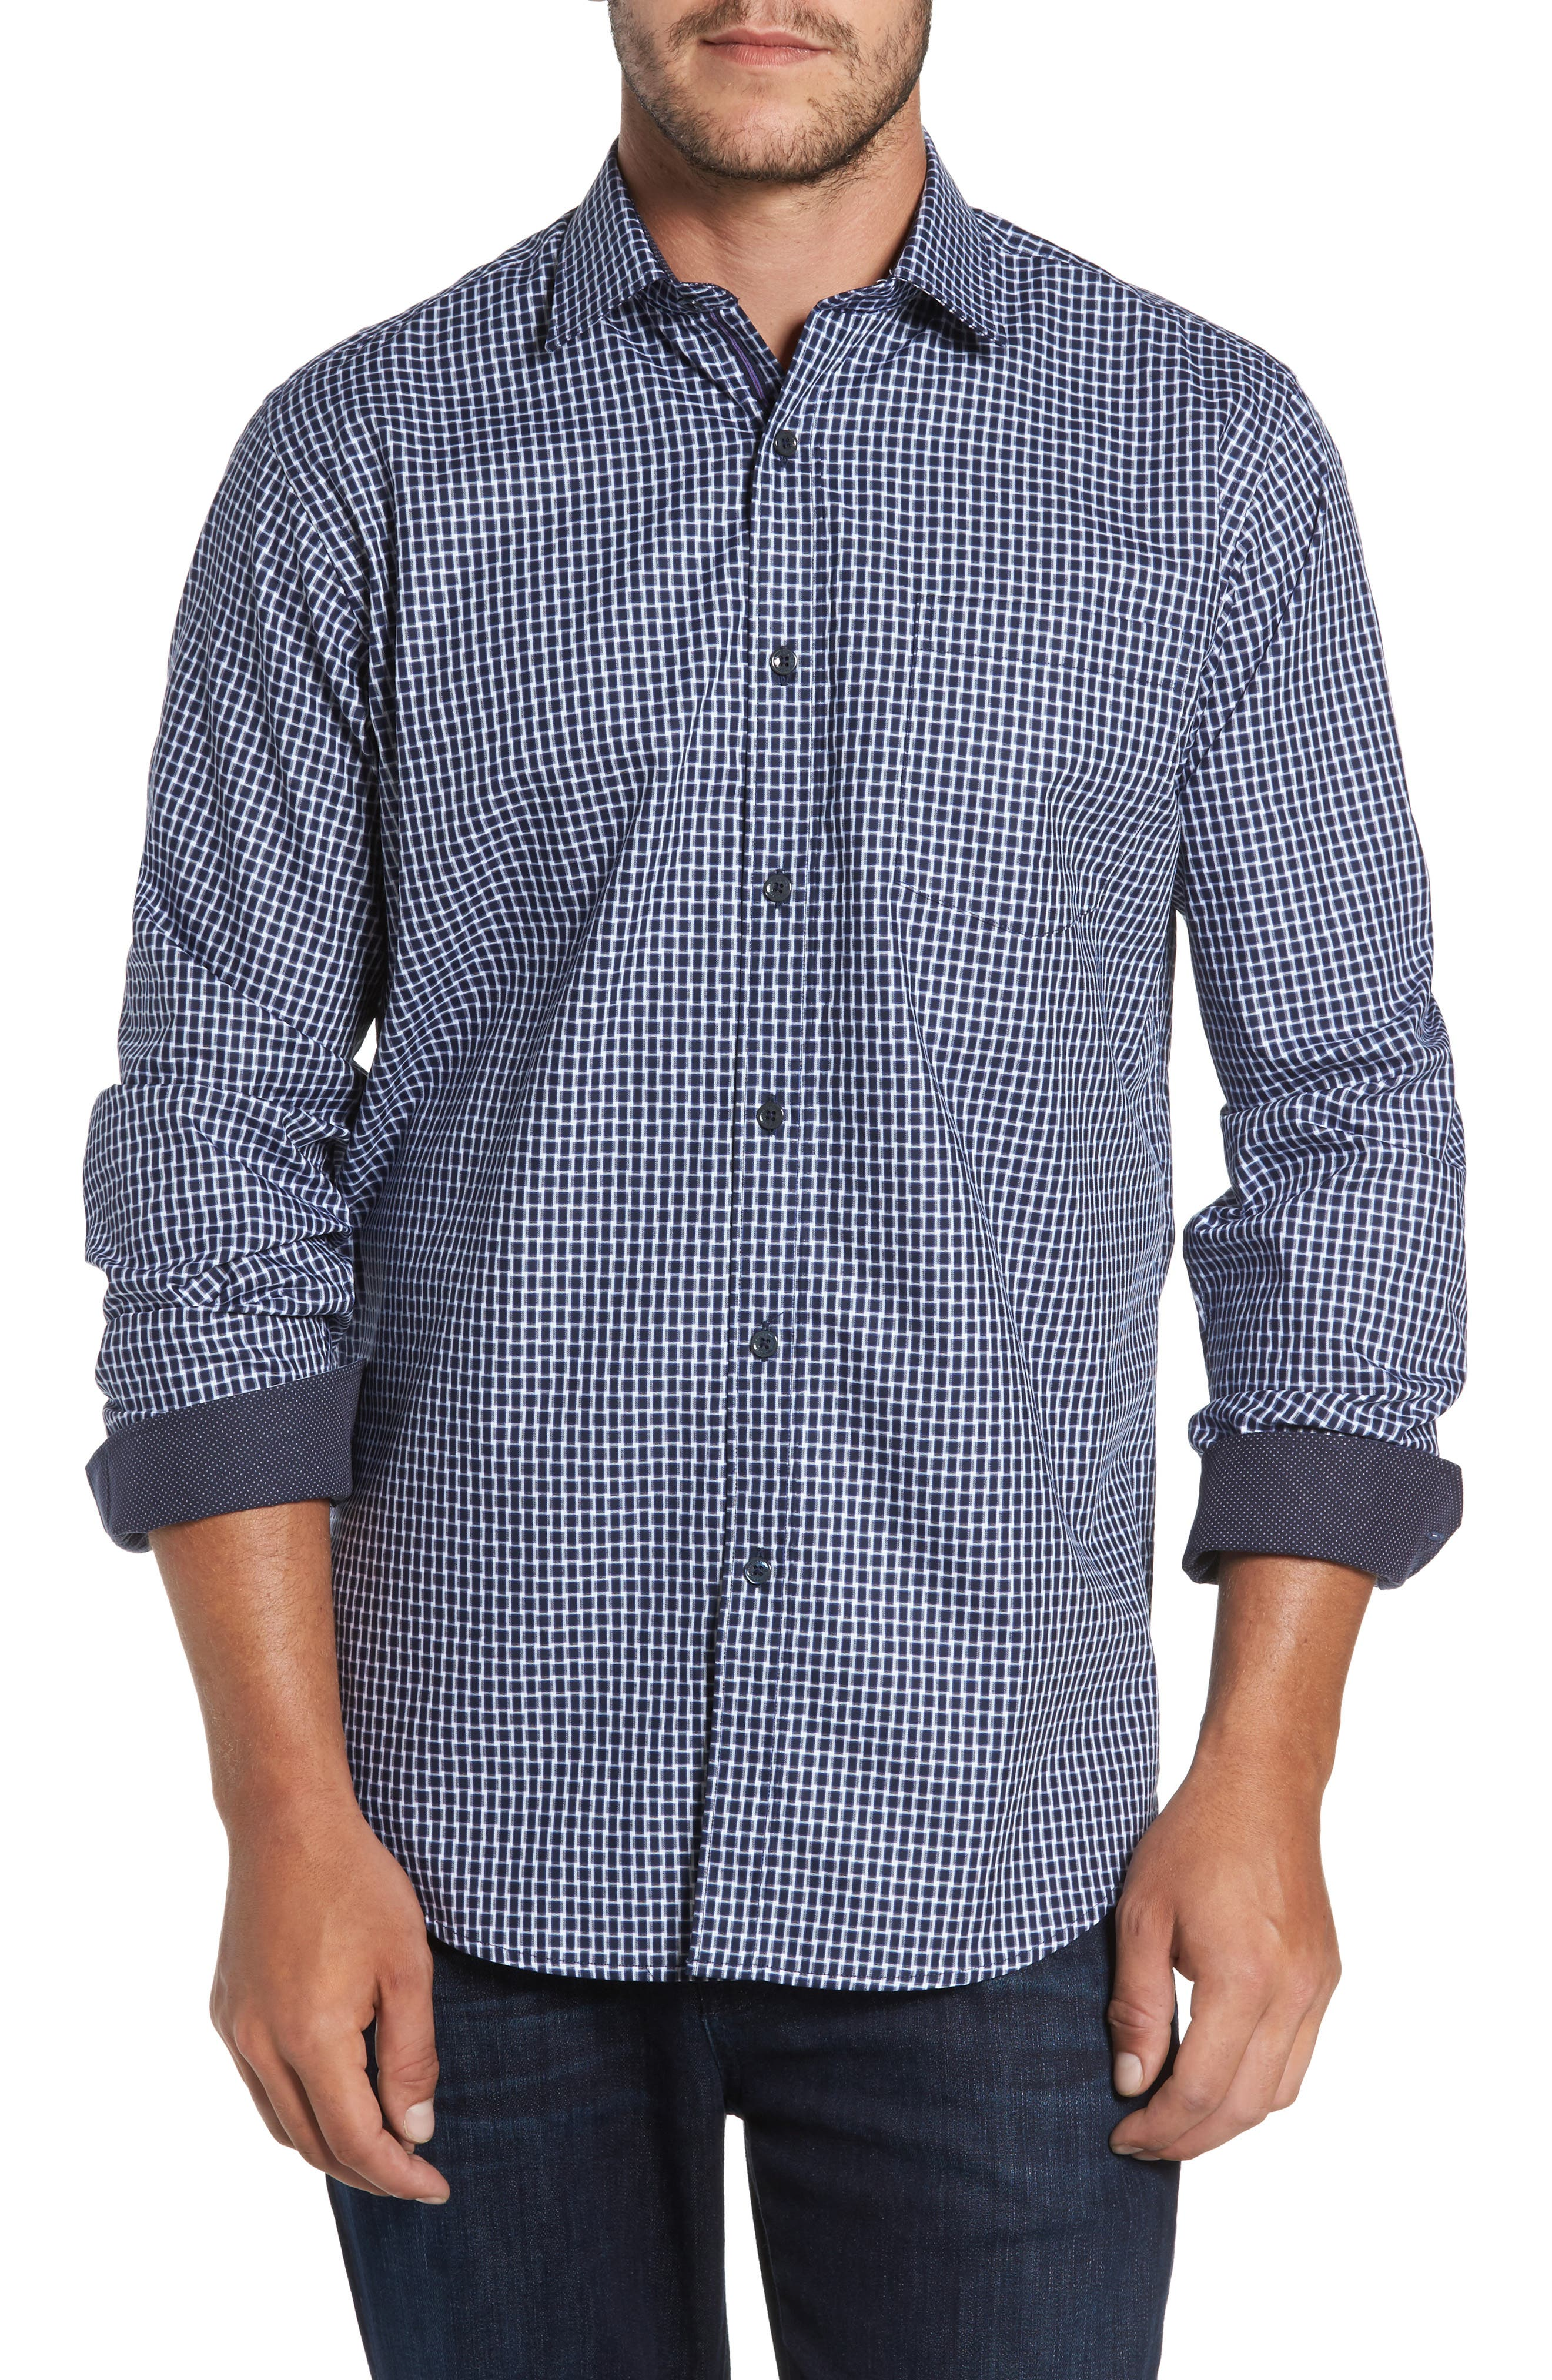 Main Image - Bugatchi Classic Fit Geo Patterned Sport Shirt